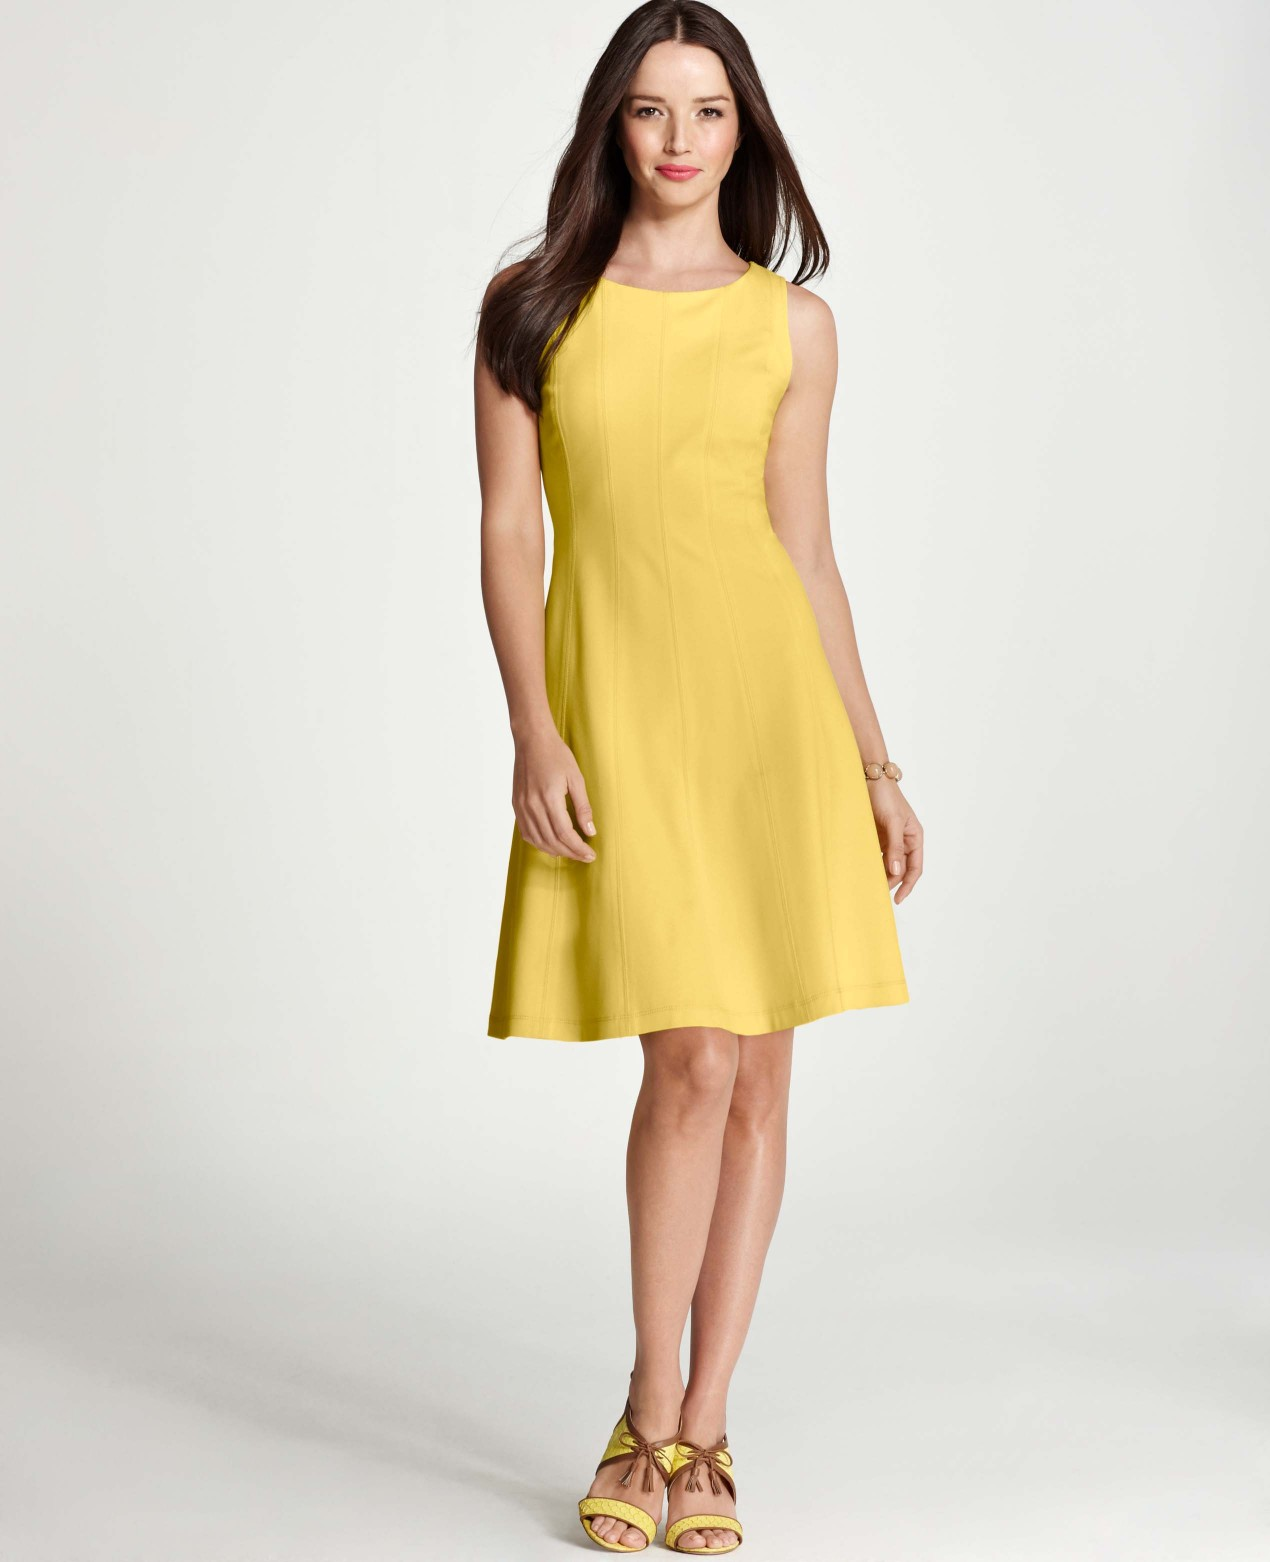 4891d04a53 Ann Taylor Tall Ponte Flounce Dress in Yellow - Lyst